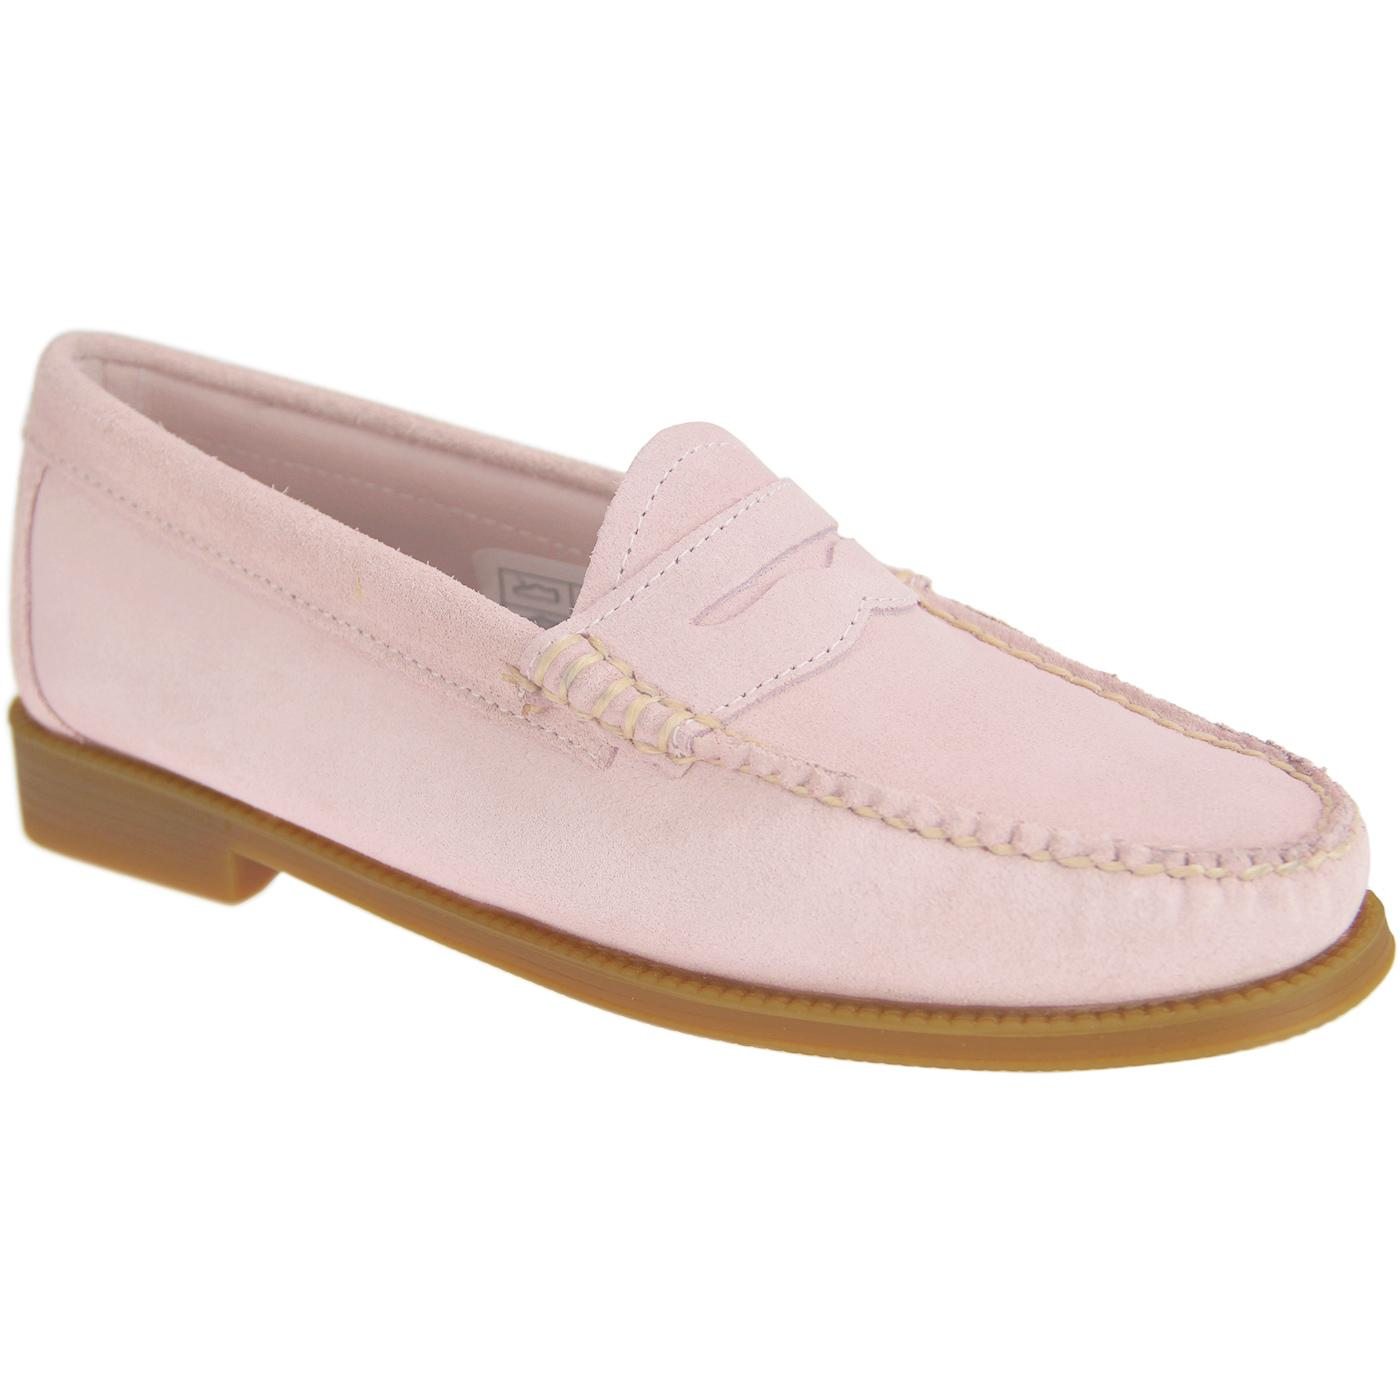 BASS WEEJUNS Women's Retro Suede Penny Loafers LP